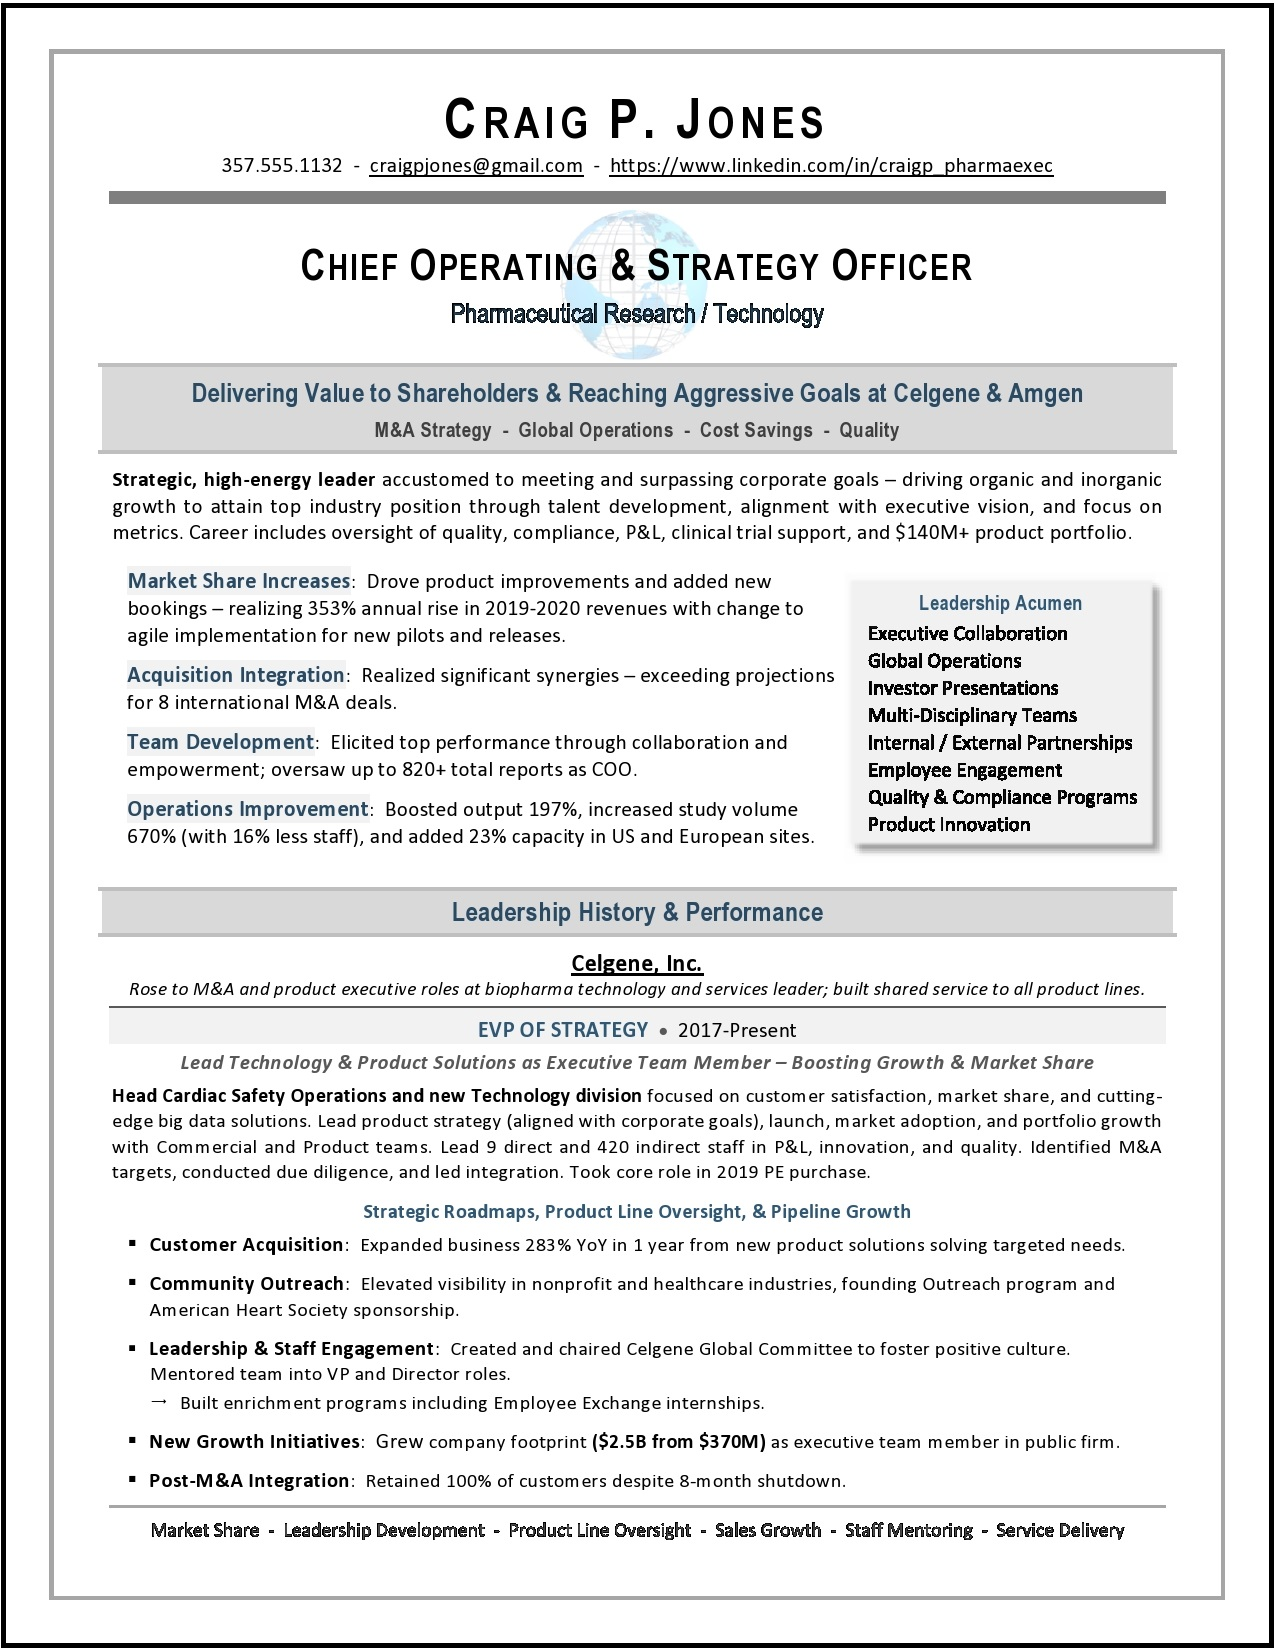 Pharmaceutical COO & Strategy Officer Resume